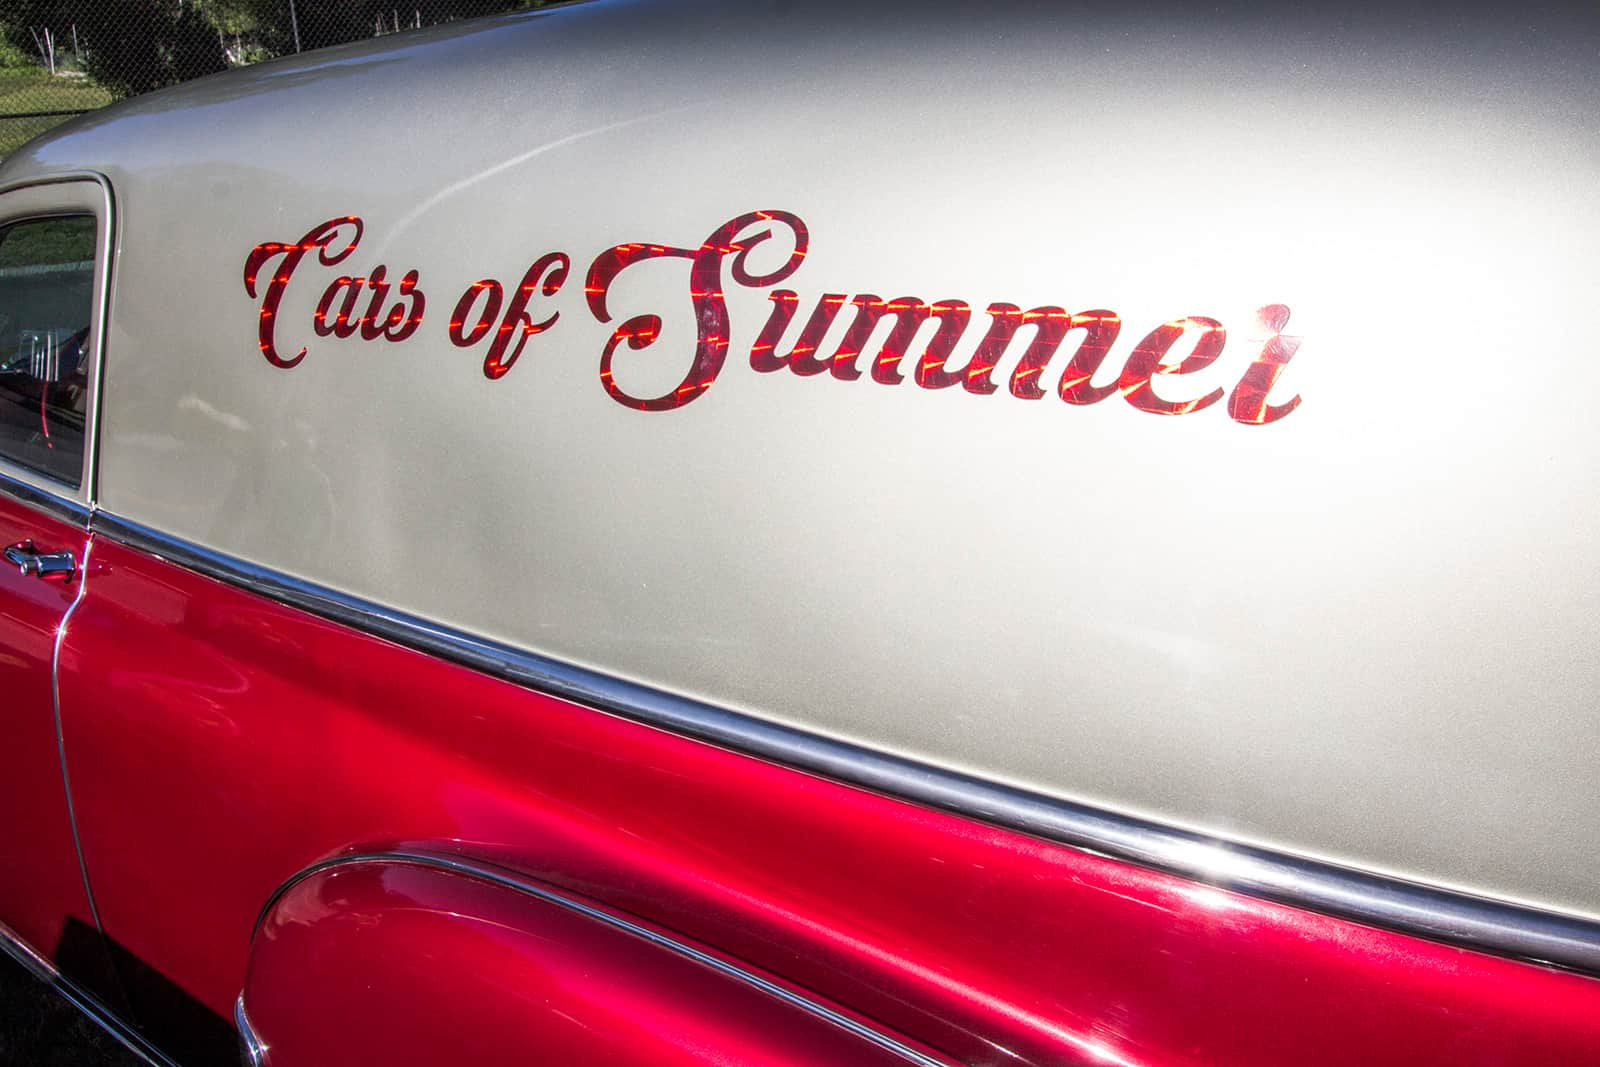 Cars of Summer Candy Apple Red 52 Panel Promo Van Side